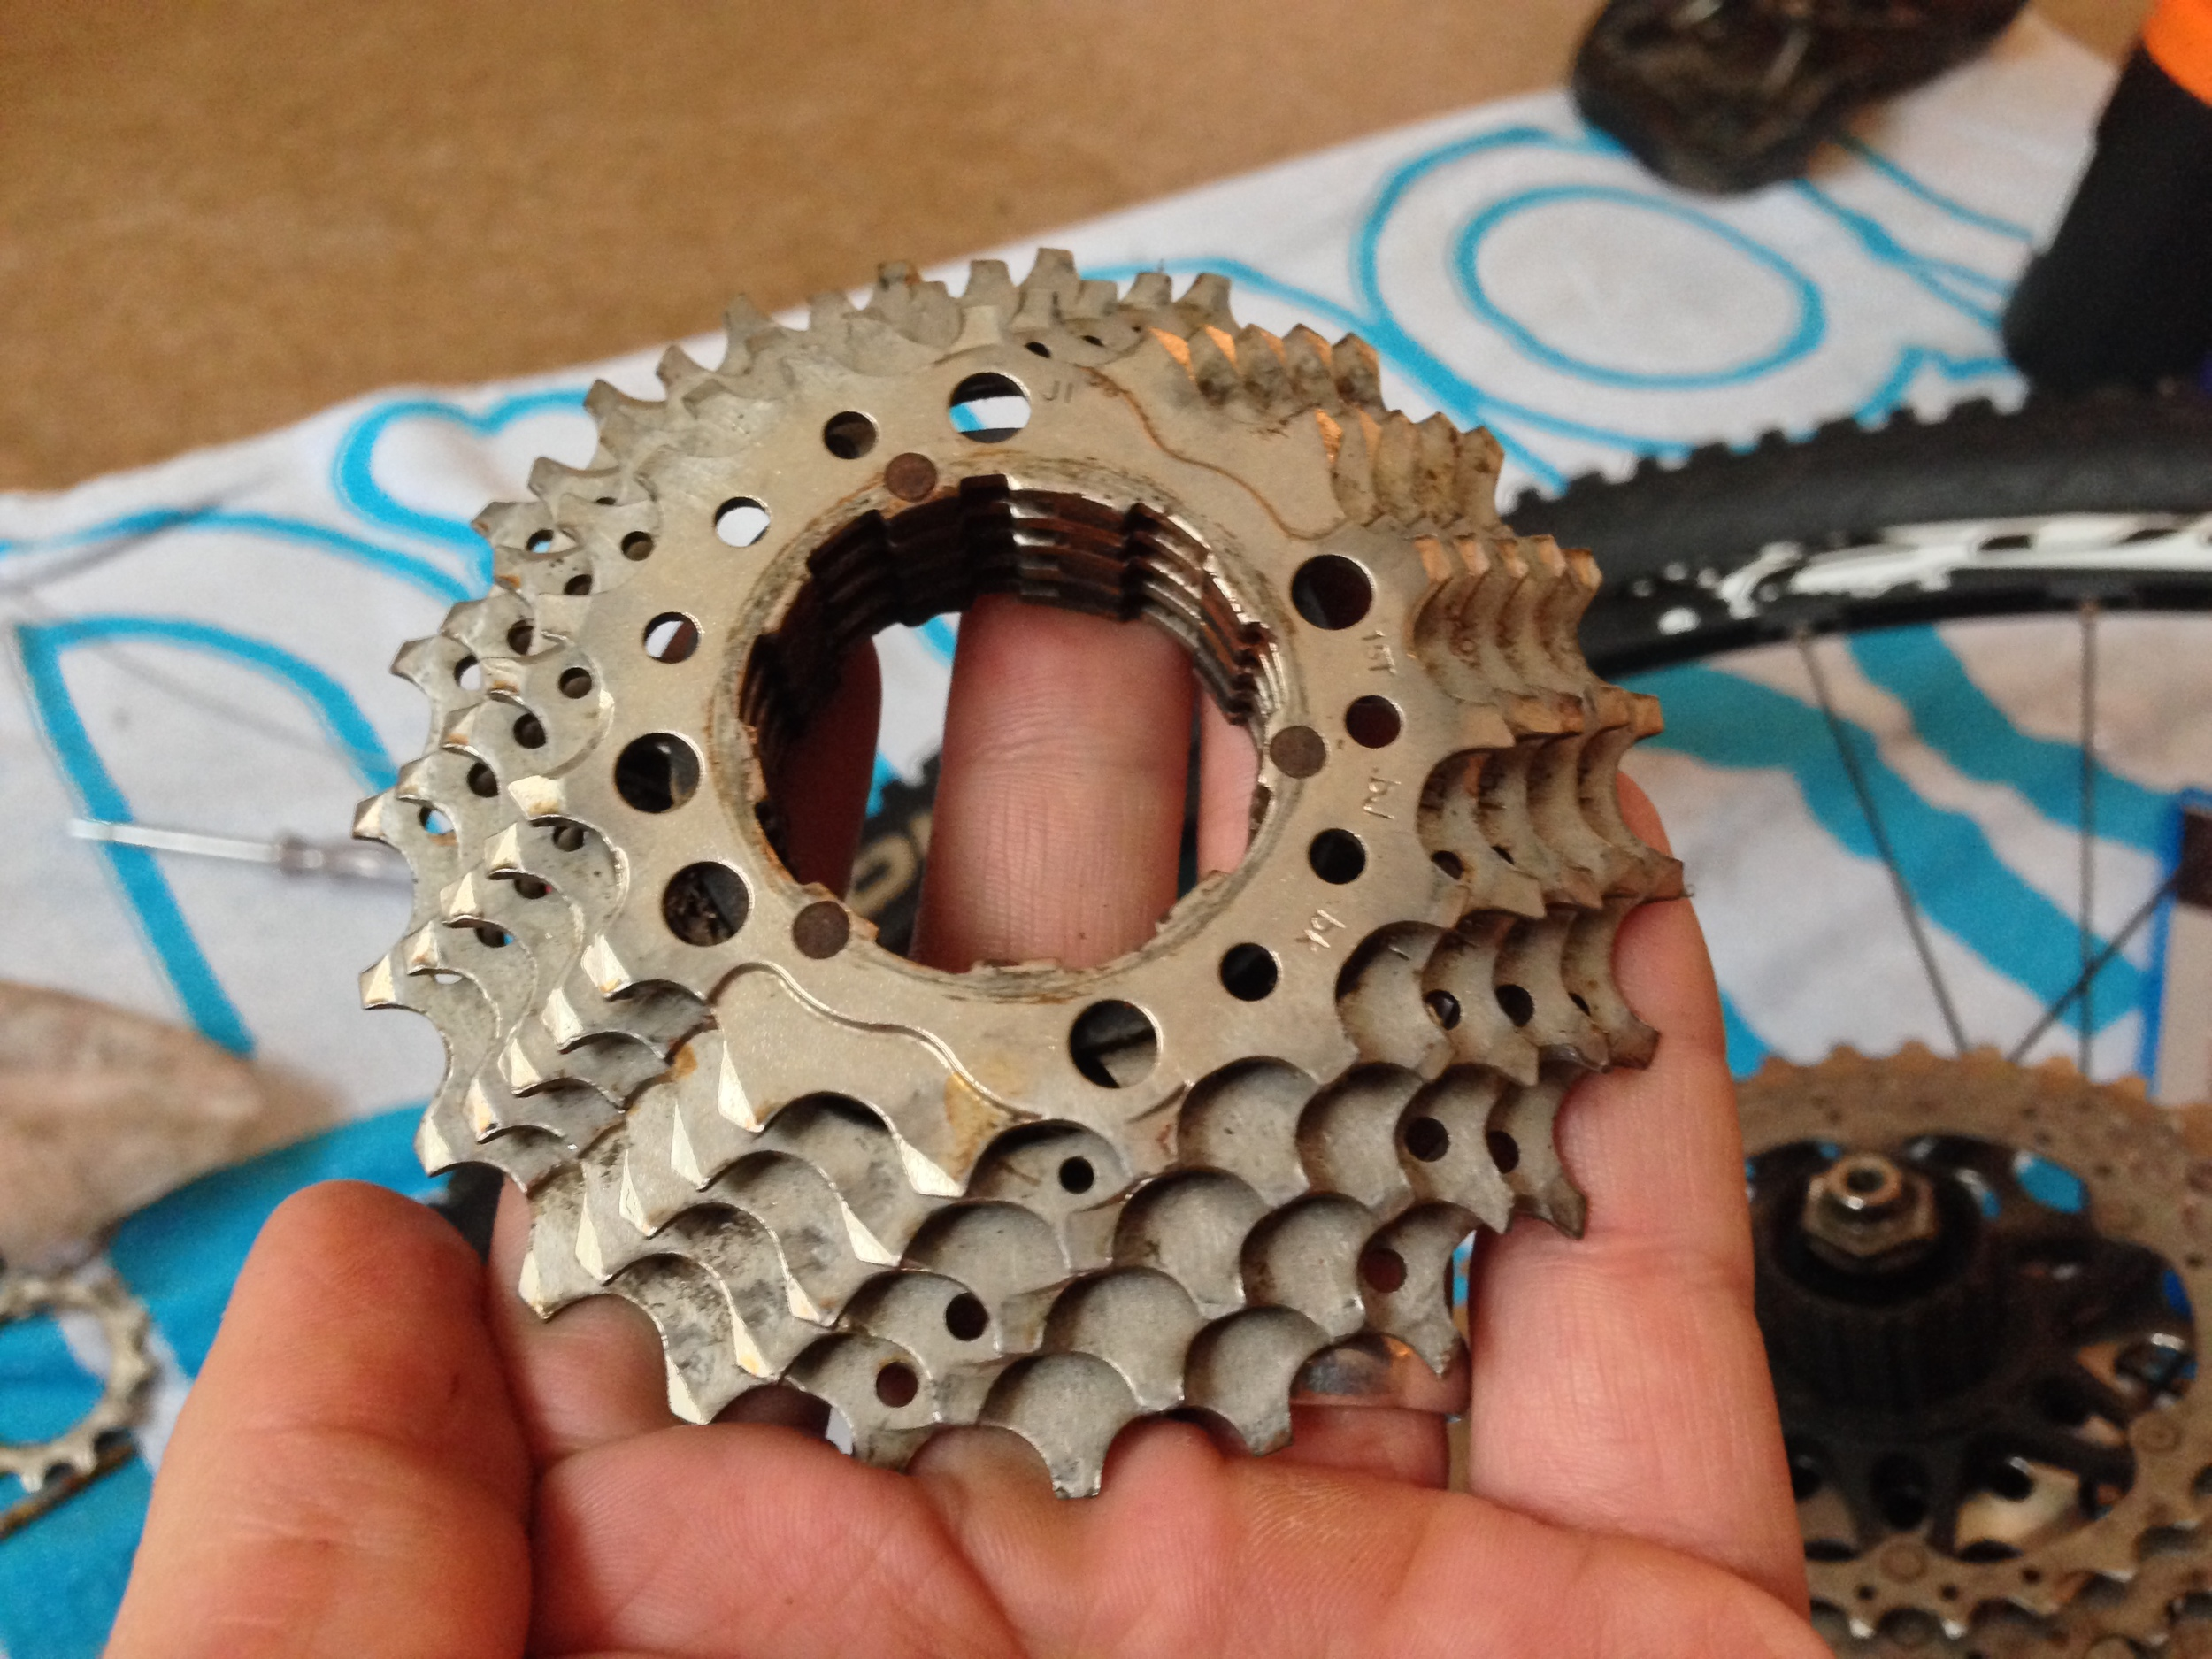 You may need to drill out the pins holding your lower cassette togther